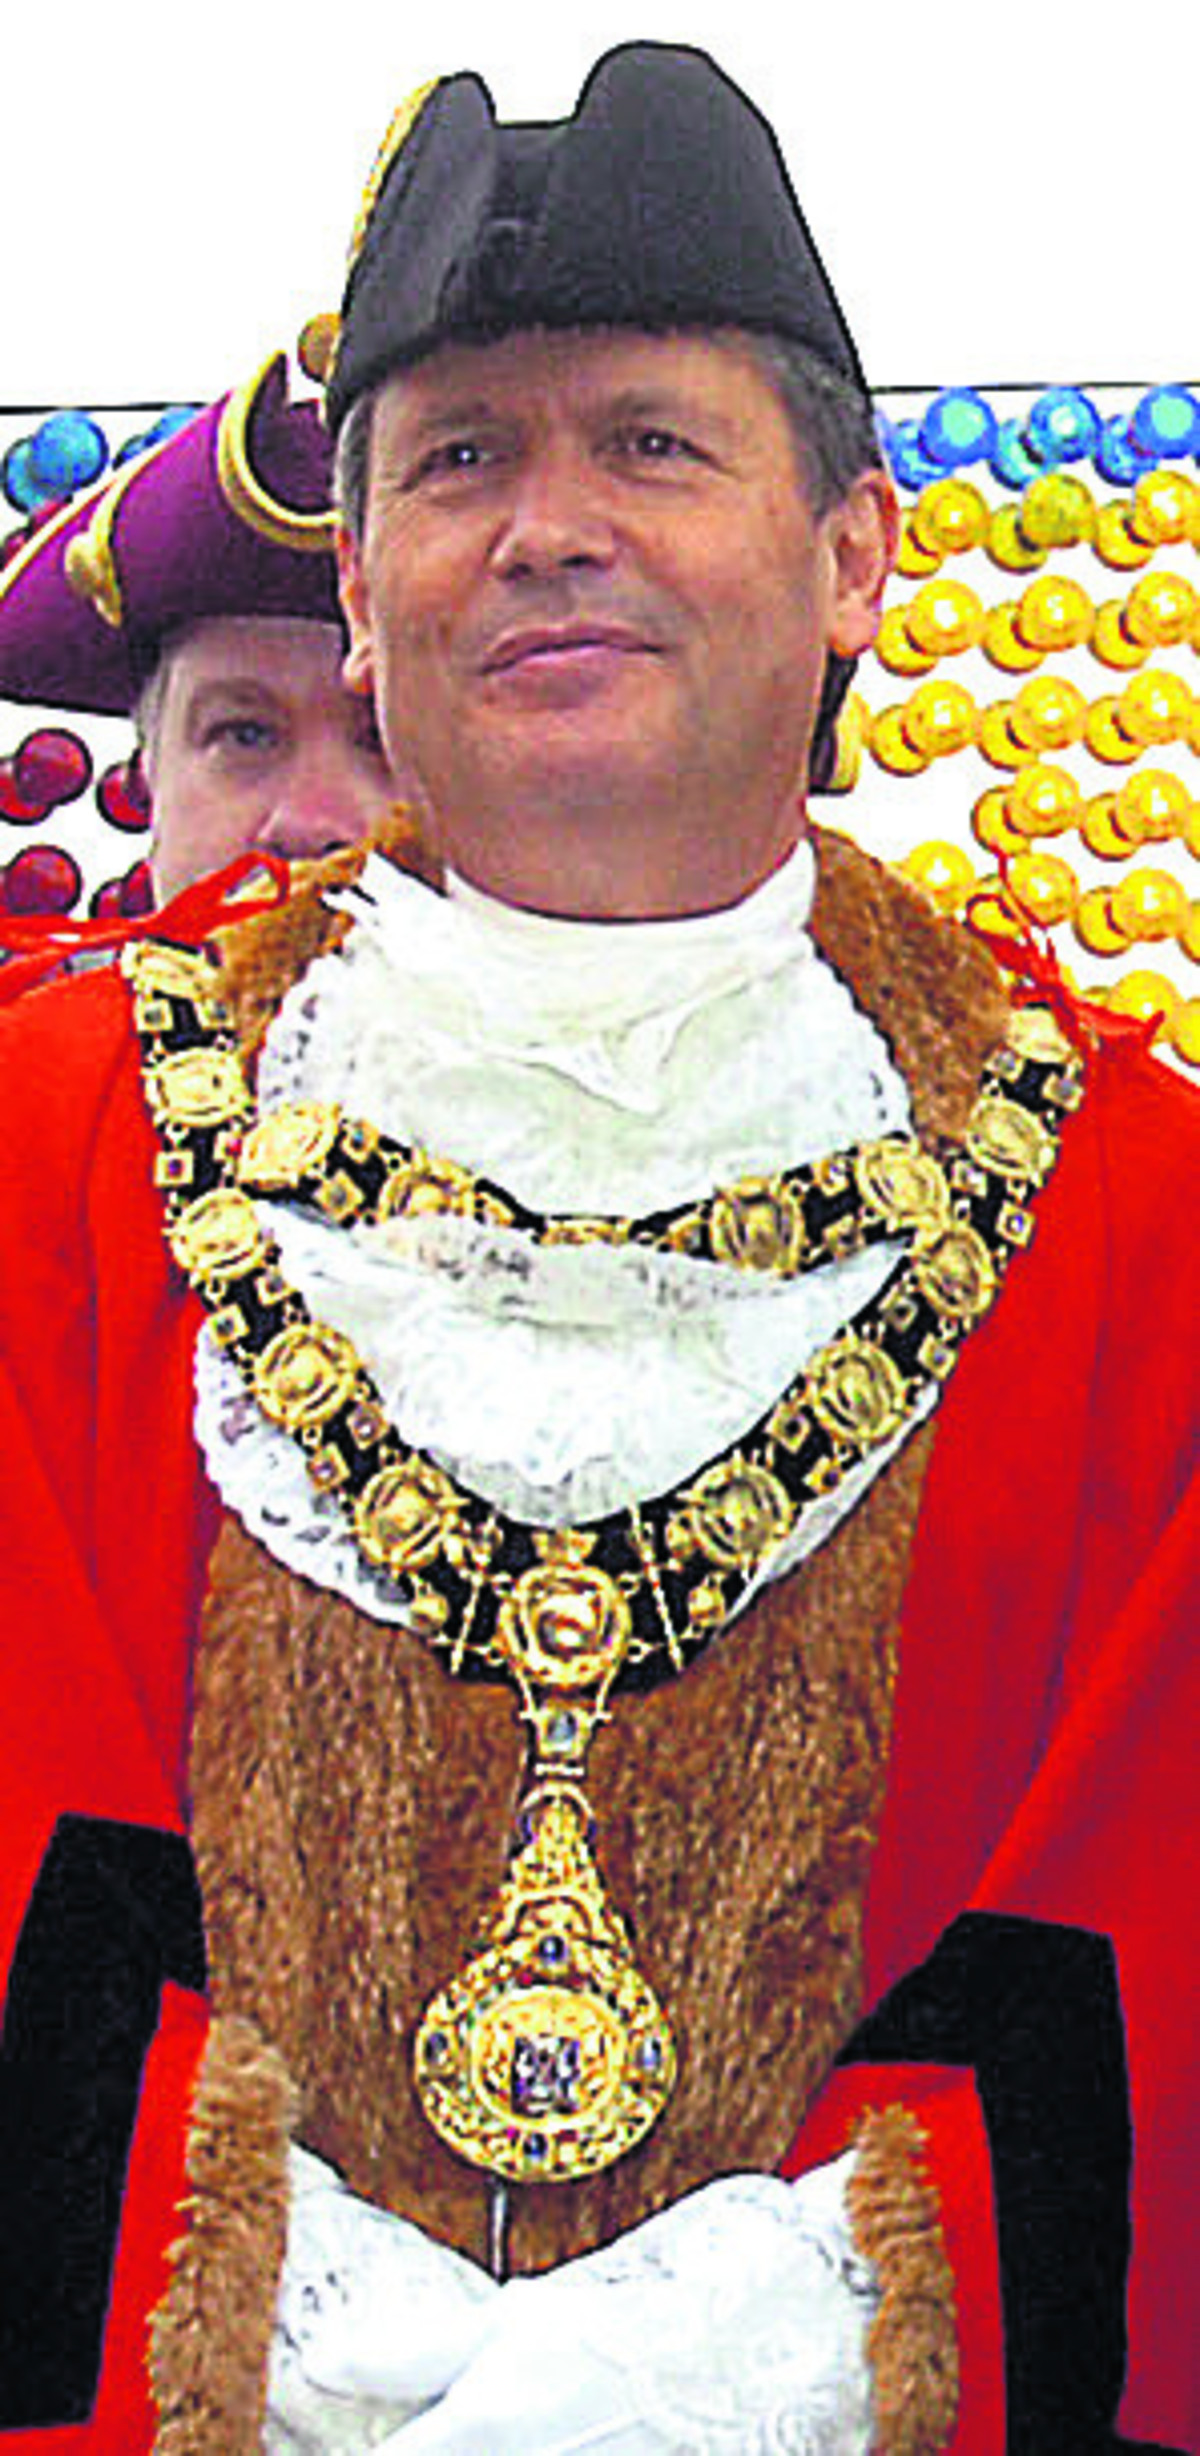 Marlborough mayor Guy Loosmore wearing the stolen ceremonial chains at the opening of the town's mop fair